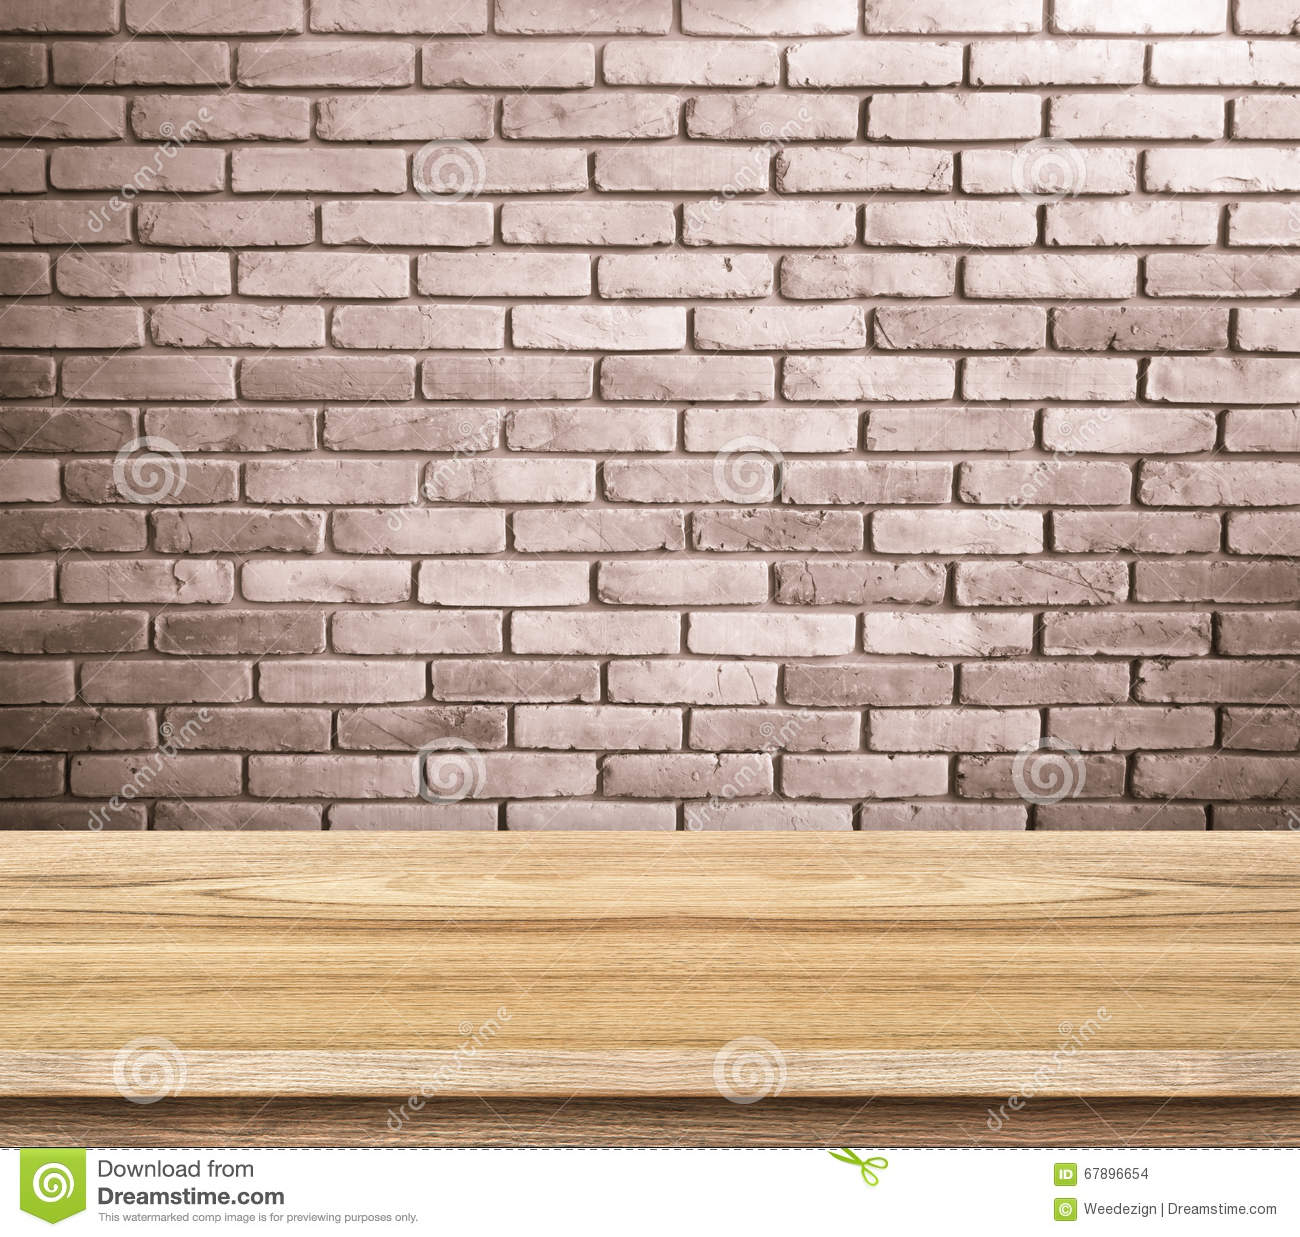 Plain wood table with hipster brick wall background stock photo - Plain Wood Table With Hipster Brick Wall Background Stock Photo Plain Wood Table With Hipster